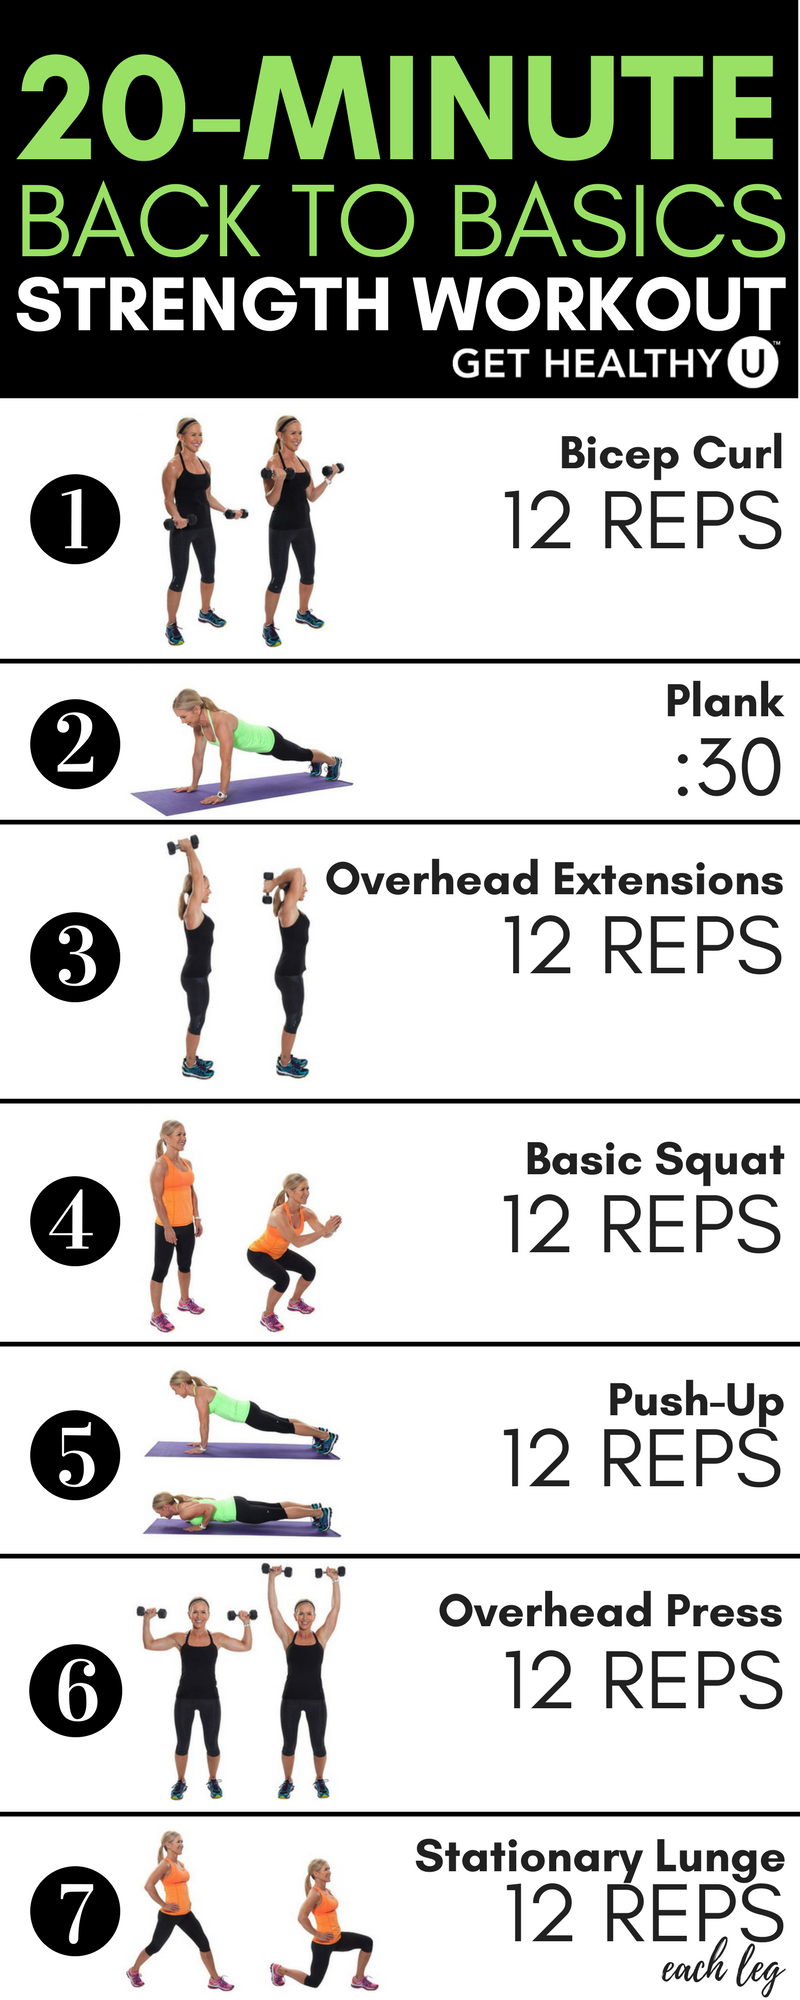 #totalbody #movements #utilizes #building #training #strength #contains #workout #fitness #healthy #...